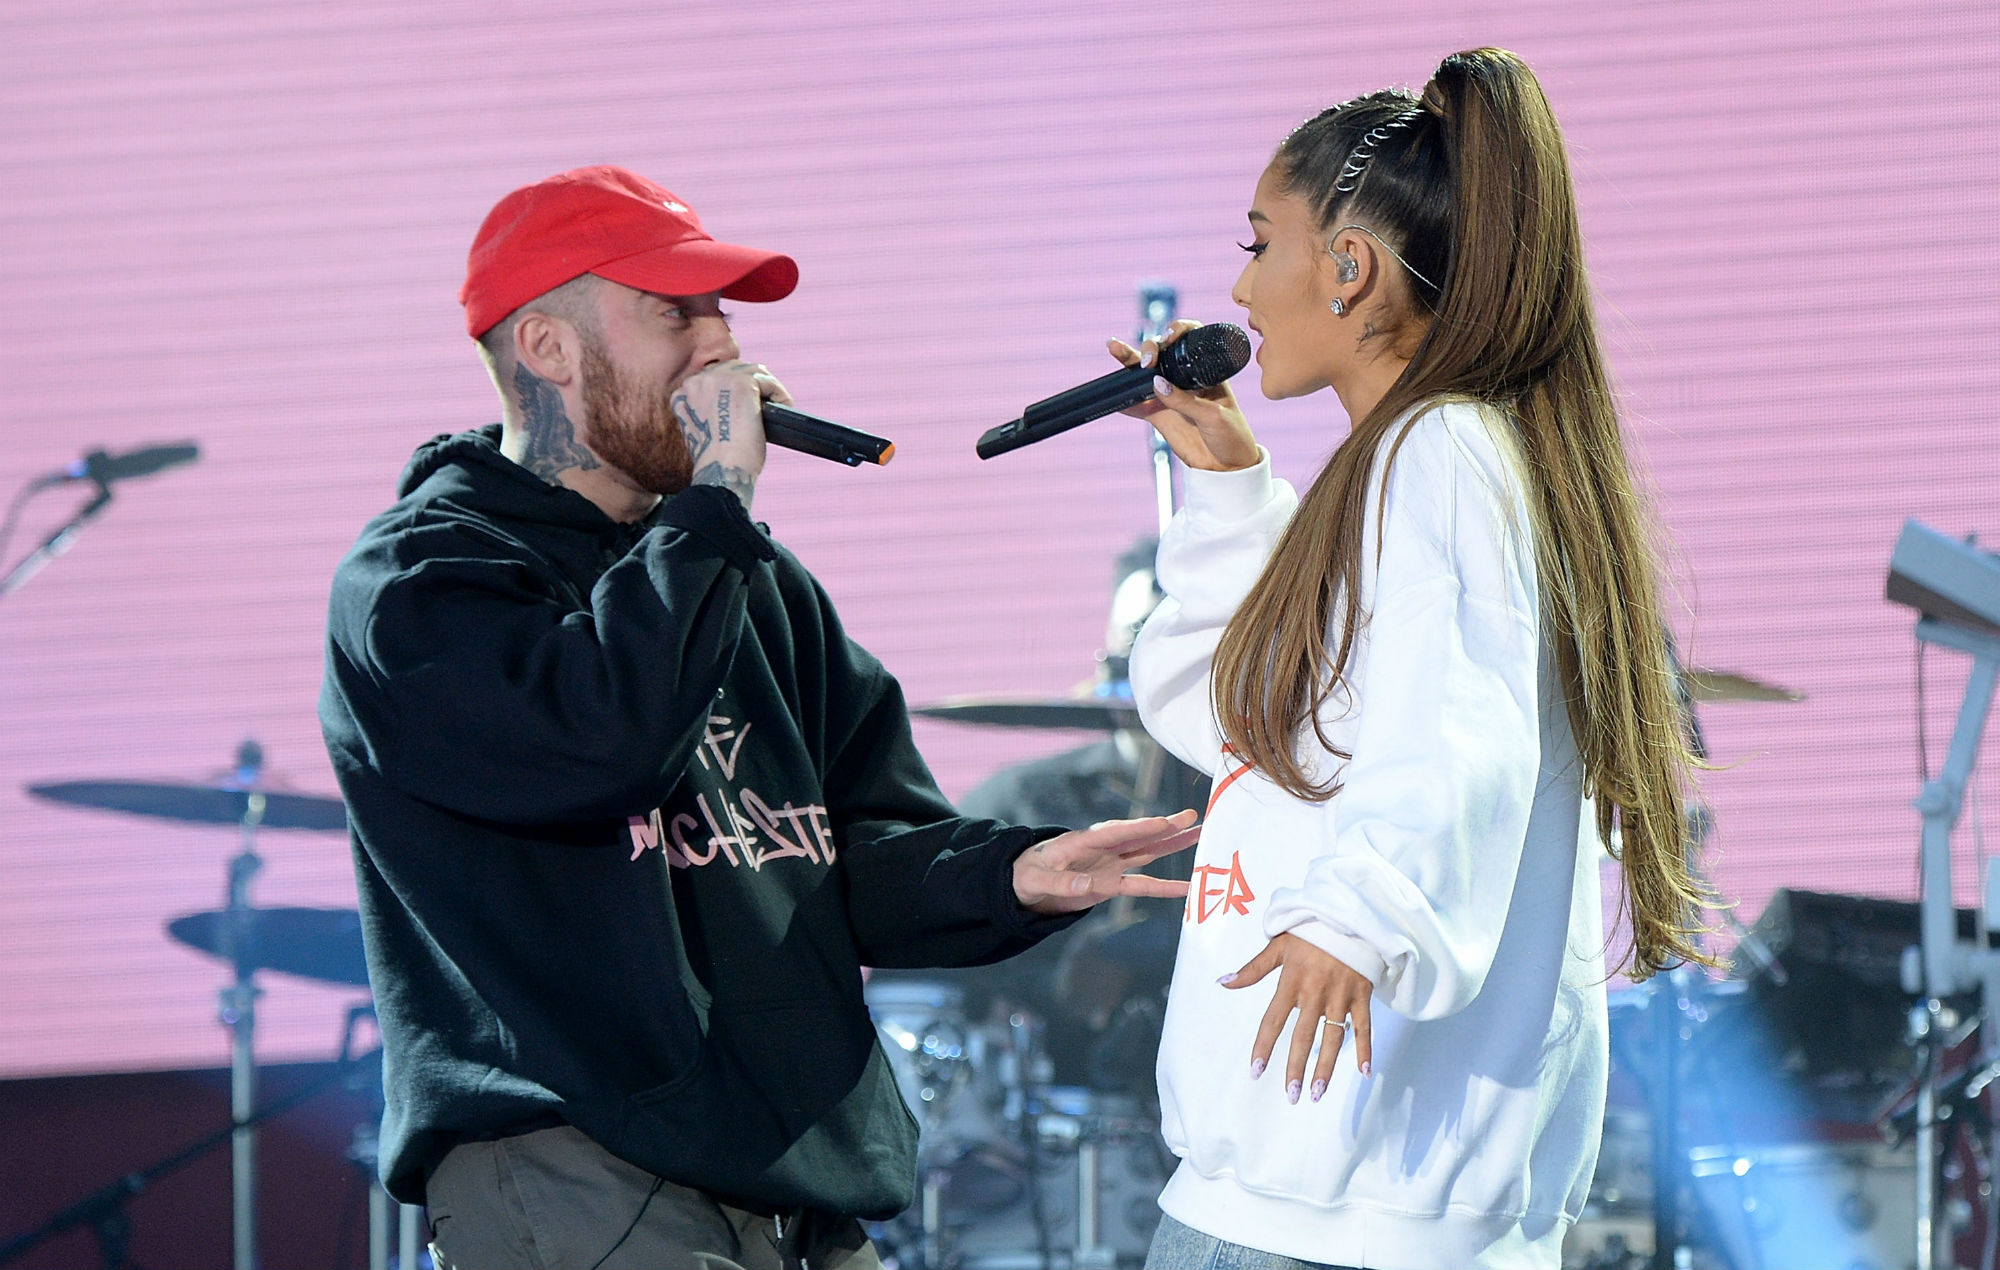 """Ariana Grande on the late Mac Miller: """"Nothing mattered more to him than music"""""""